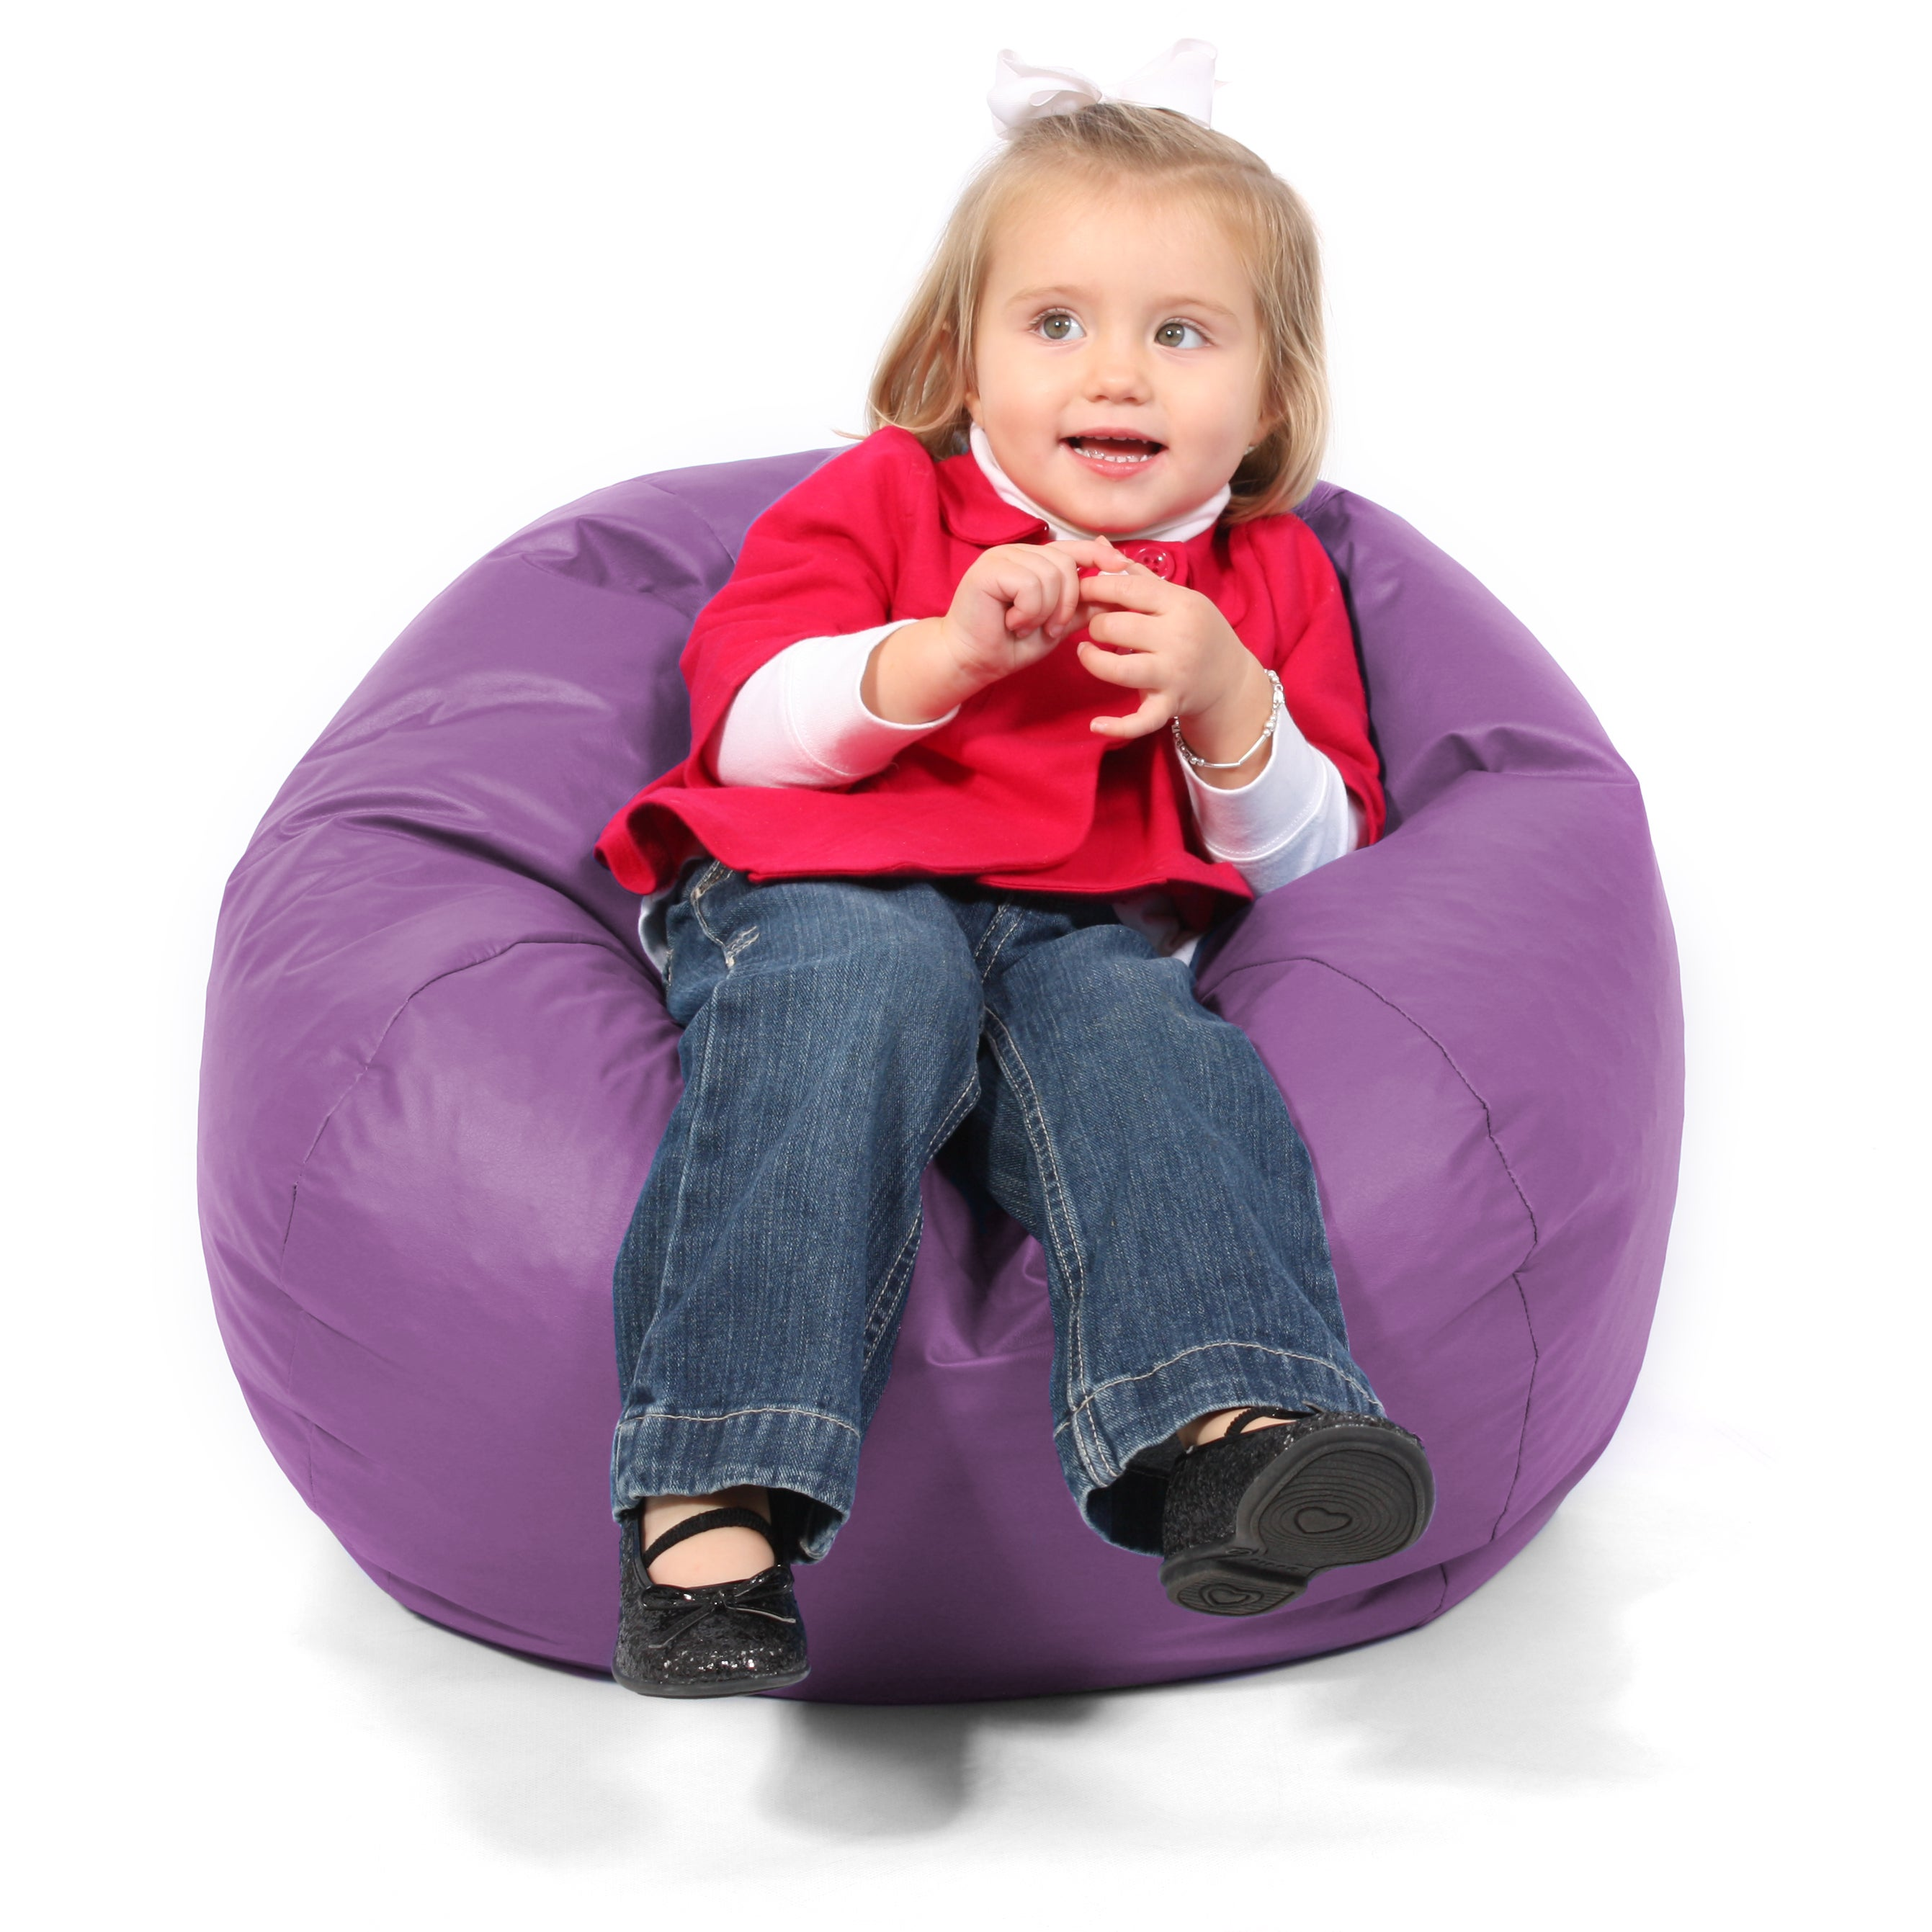 Beansack Kids Purple Vinyl Bean Bag Free Shipping On